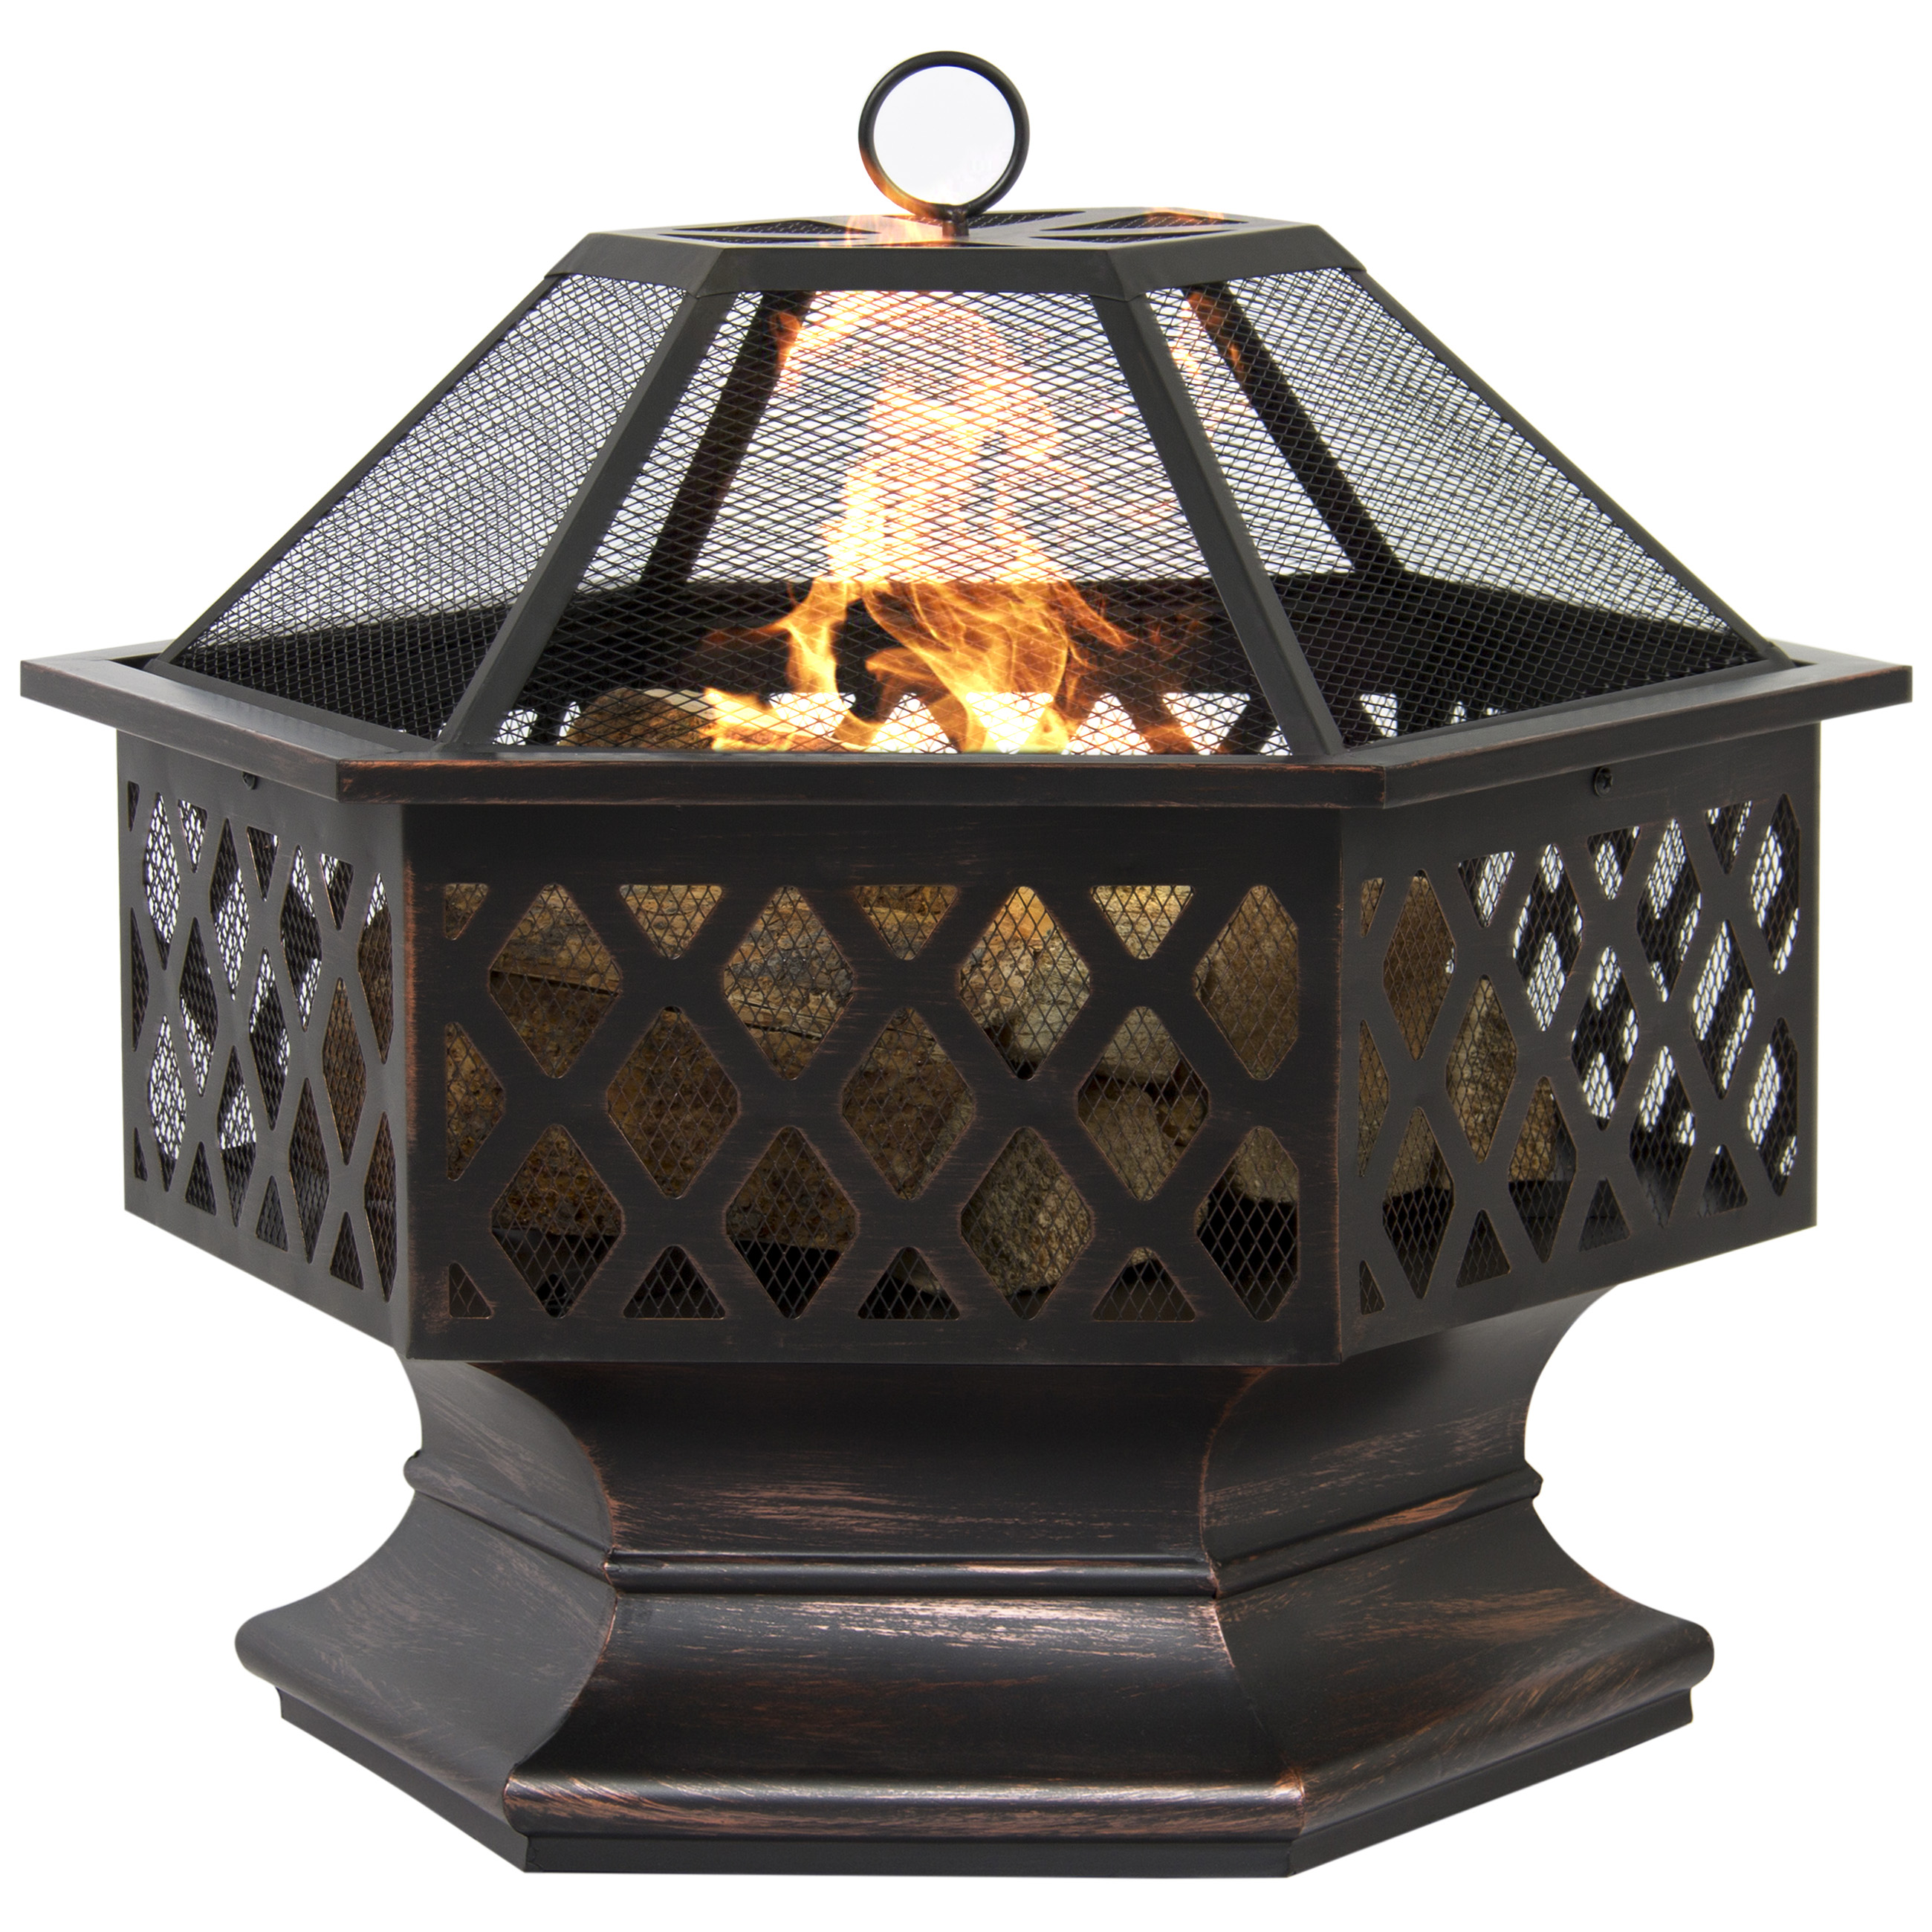 Best Choice Products Hex Shaped Firepit for Outdoor Home Garden Backyard Black by Best Choice Products